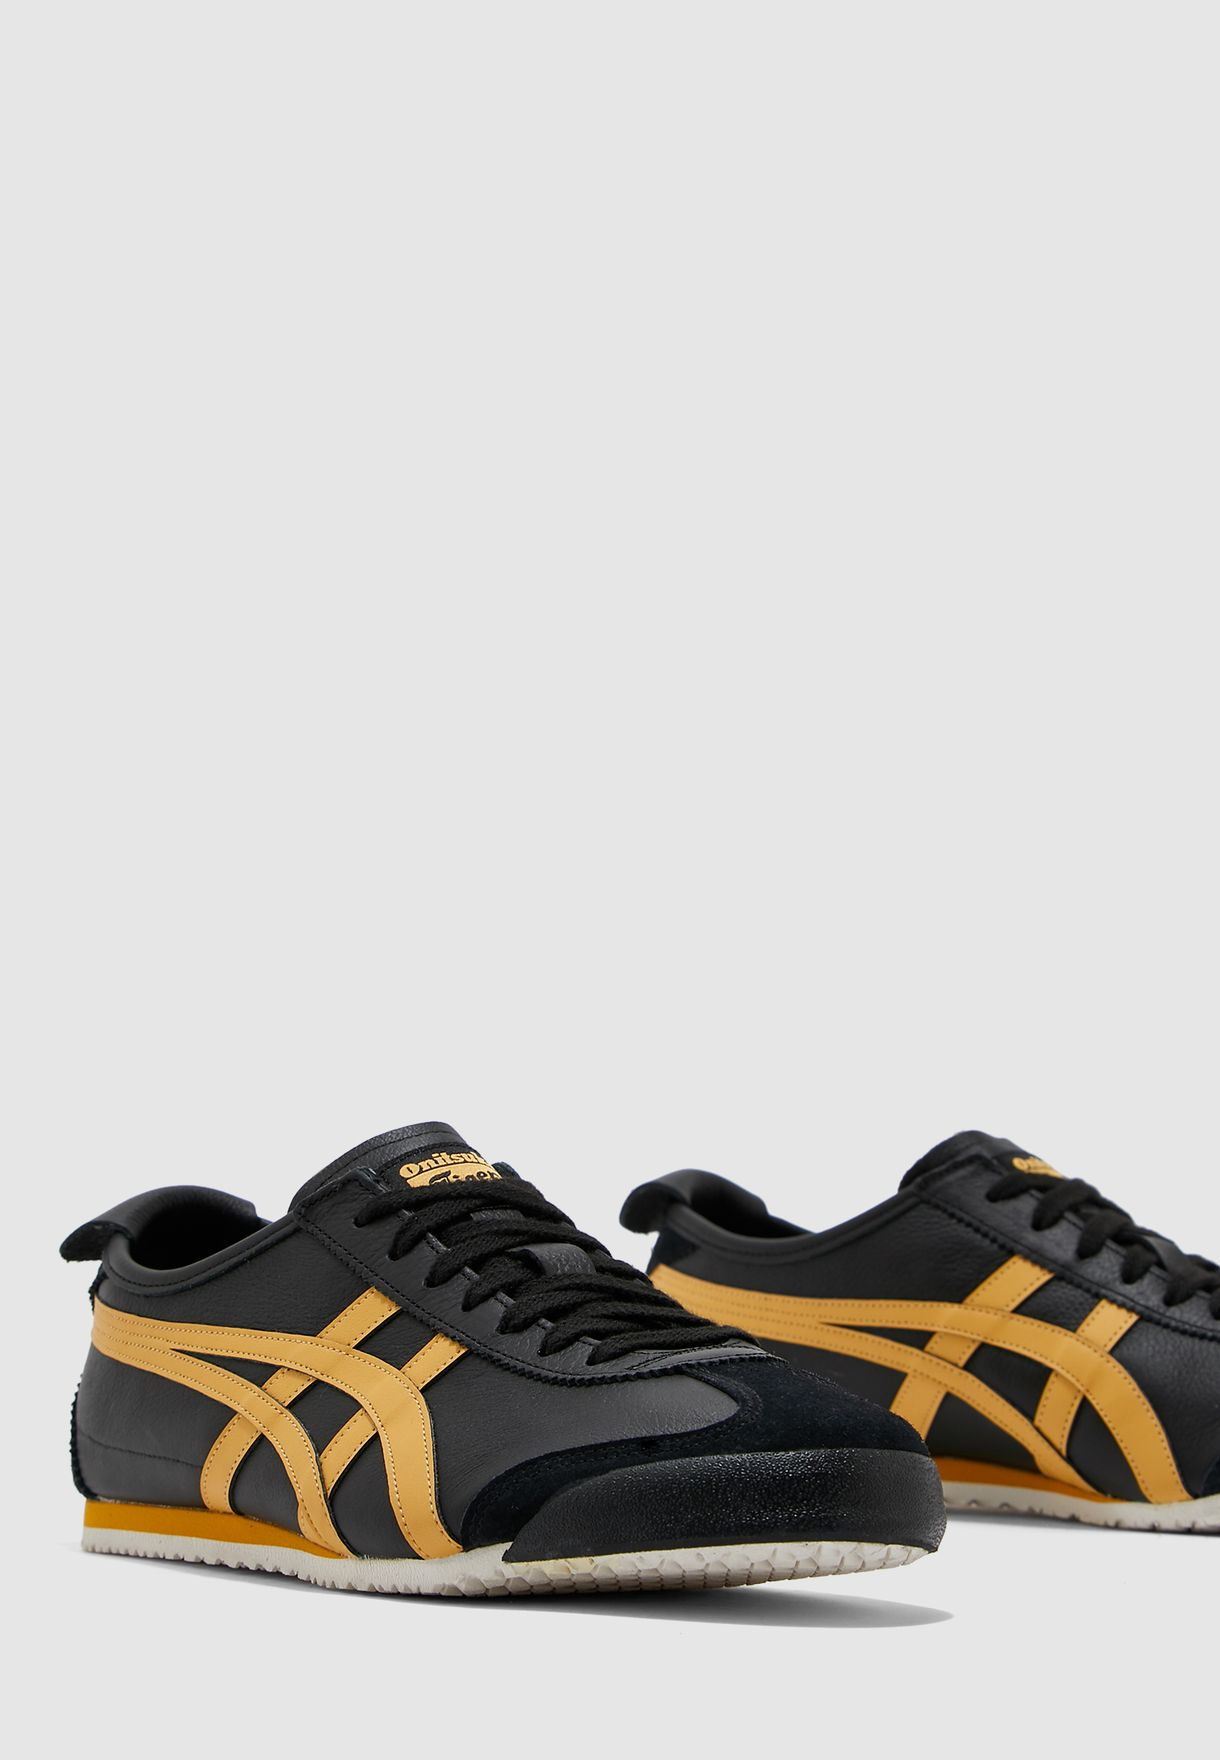 onitsuka tiger mexico 66 shop online original wear